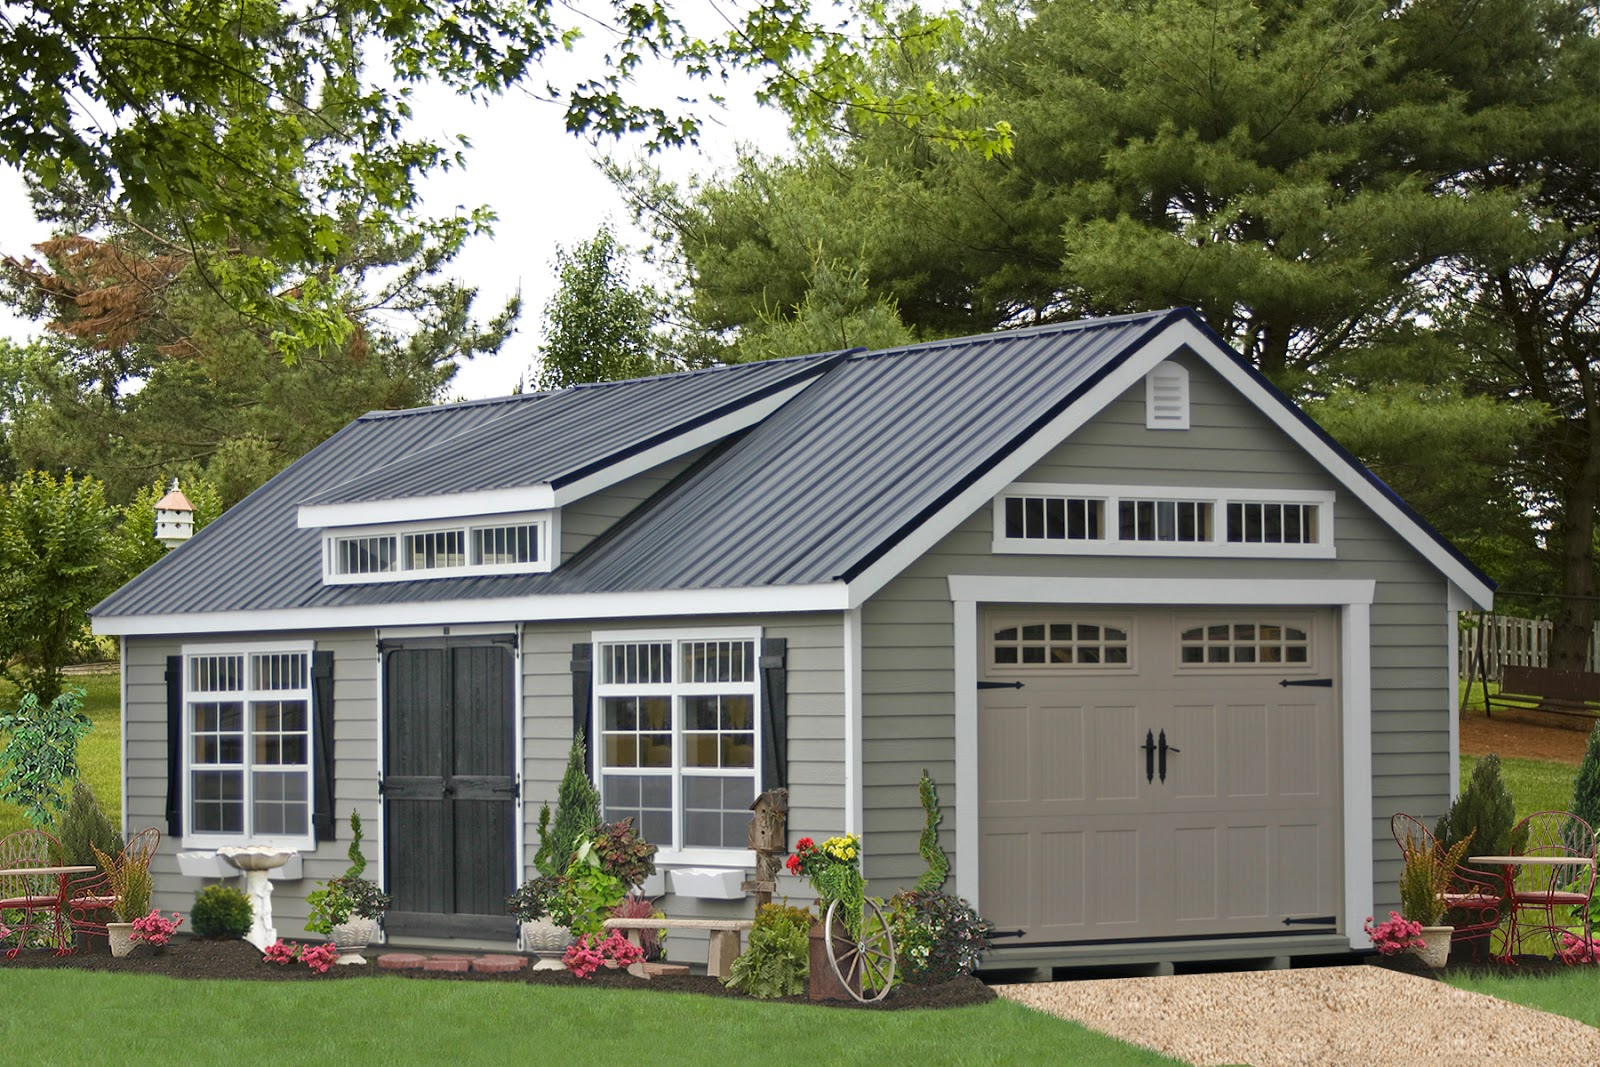 Garden Sheds New Hampshire garden sheds nh reeds ferry hudson united in decorating